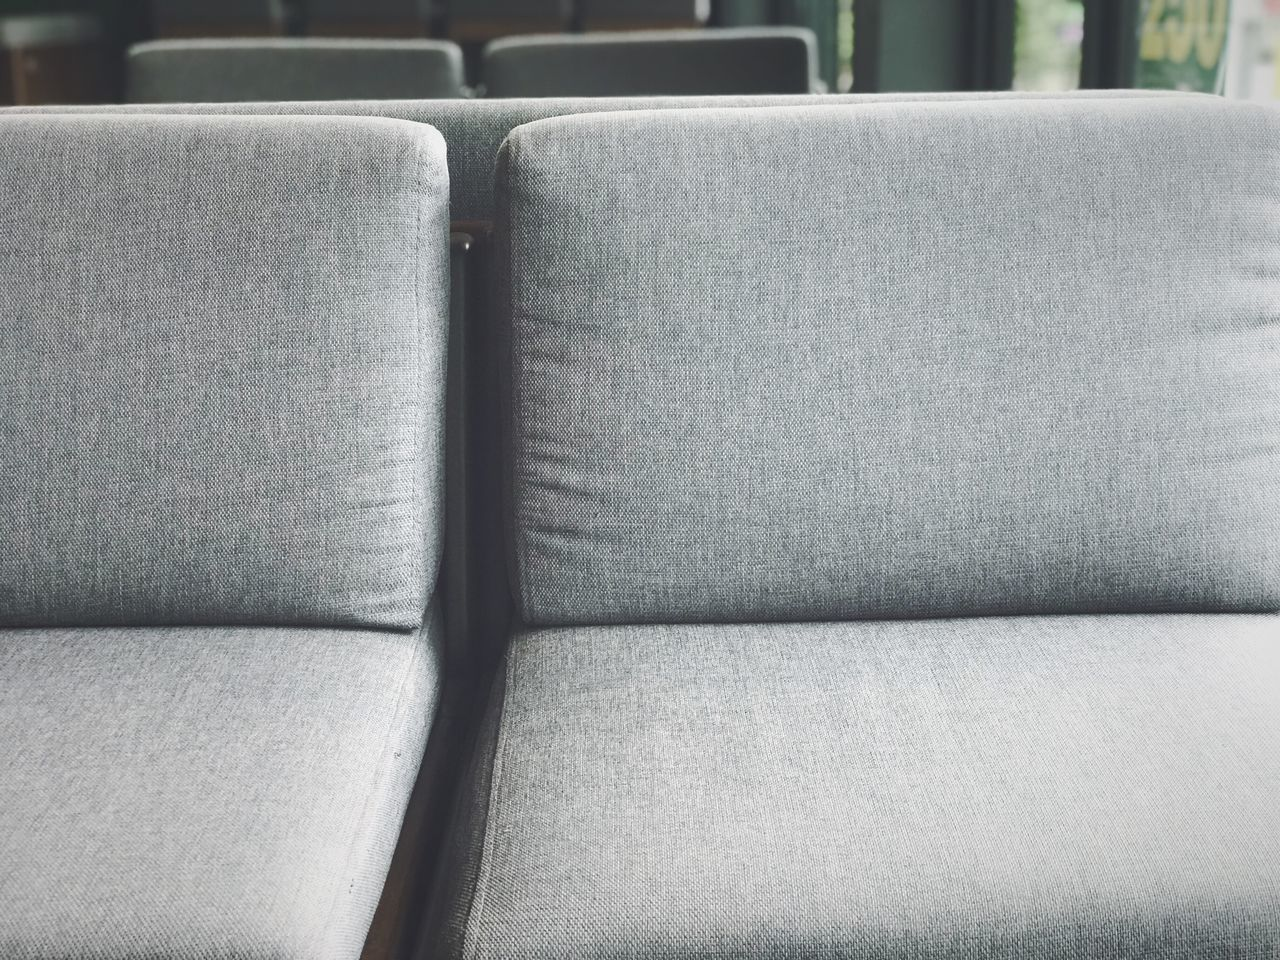 HIGH ANGLE VIEW OF EMPTY SEATS IN SOFA